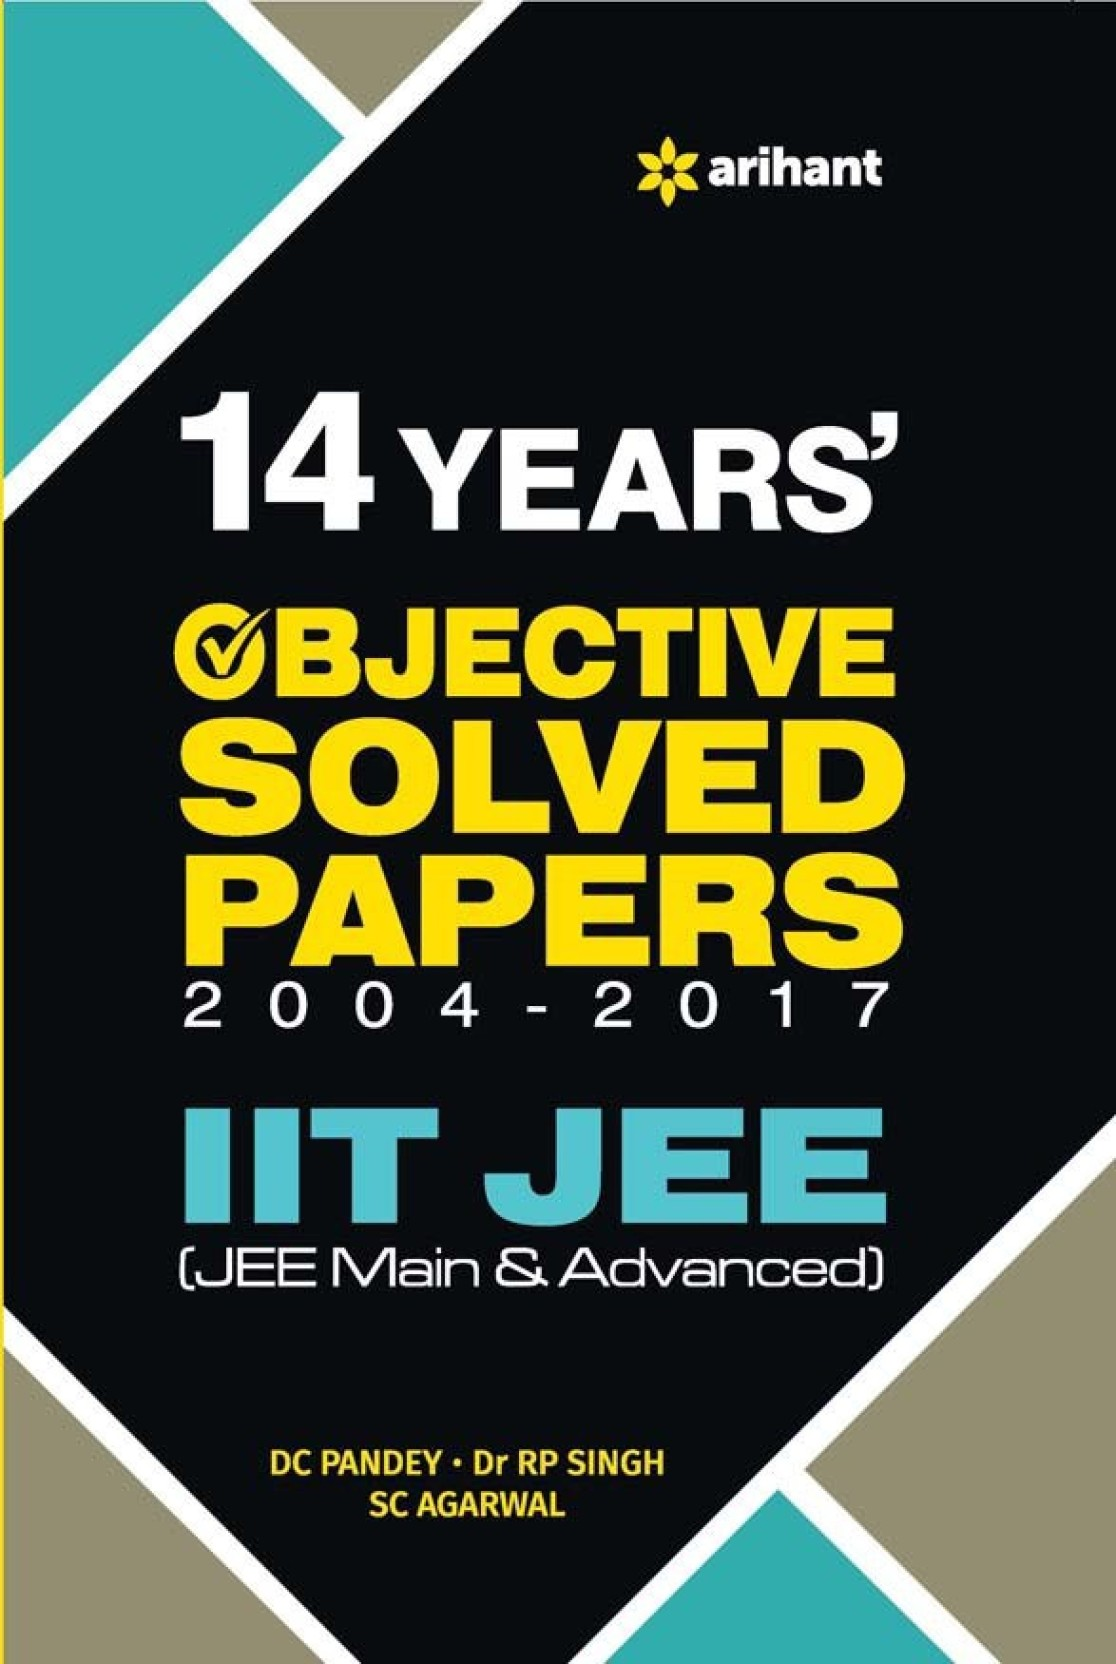 IIT JEE 14 Years Objective Solved Papers 2004 - 2017. ADD TO CART